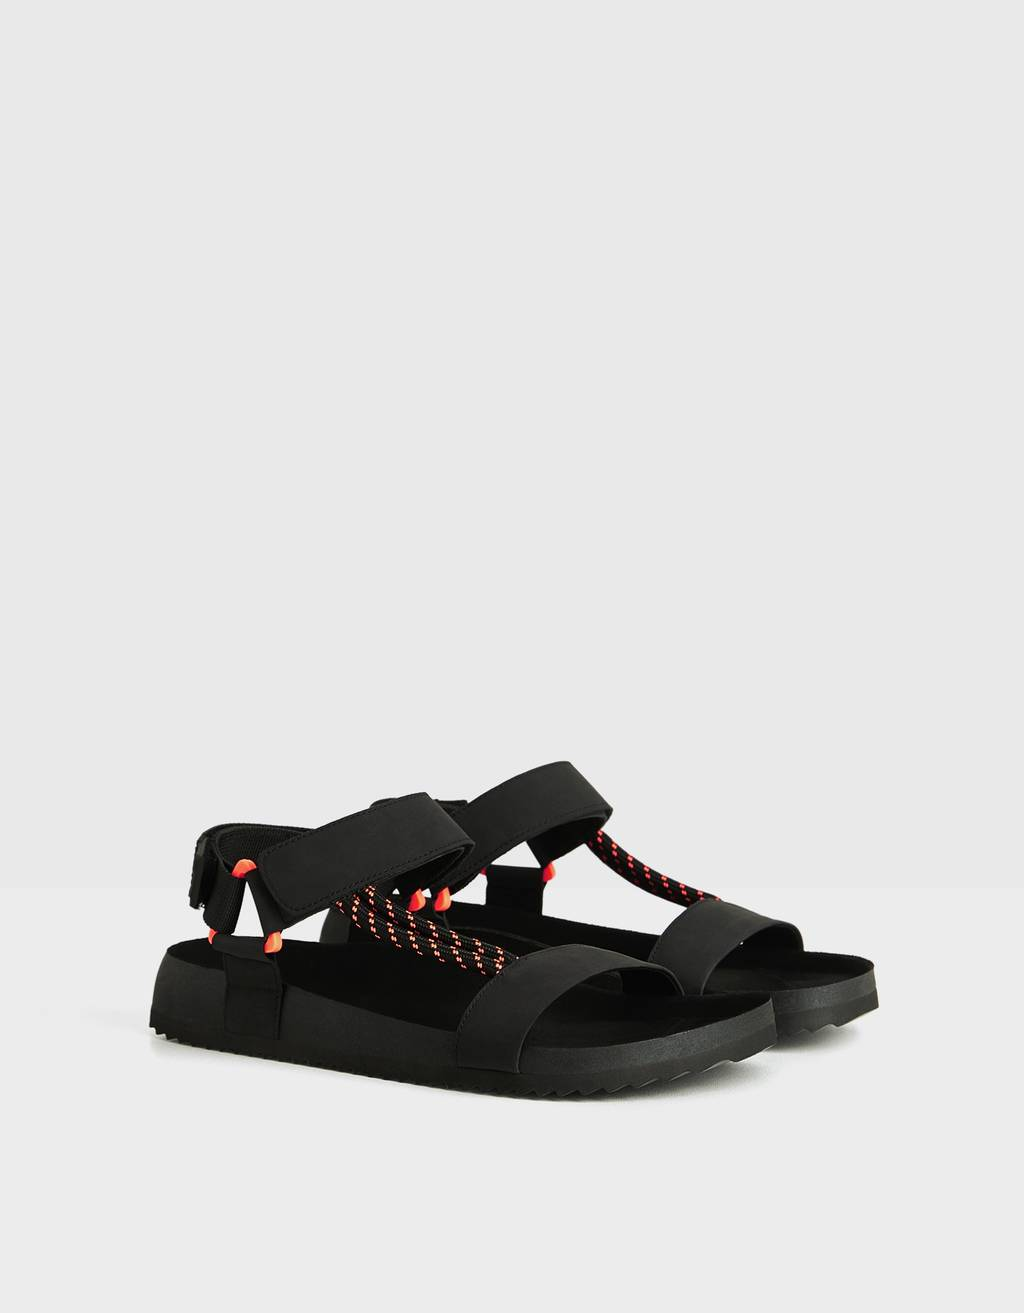 Men's strappy sandals with neon detail - Shoes - Man